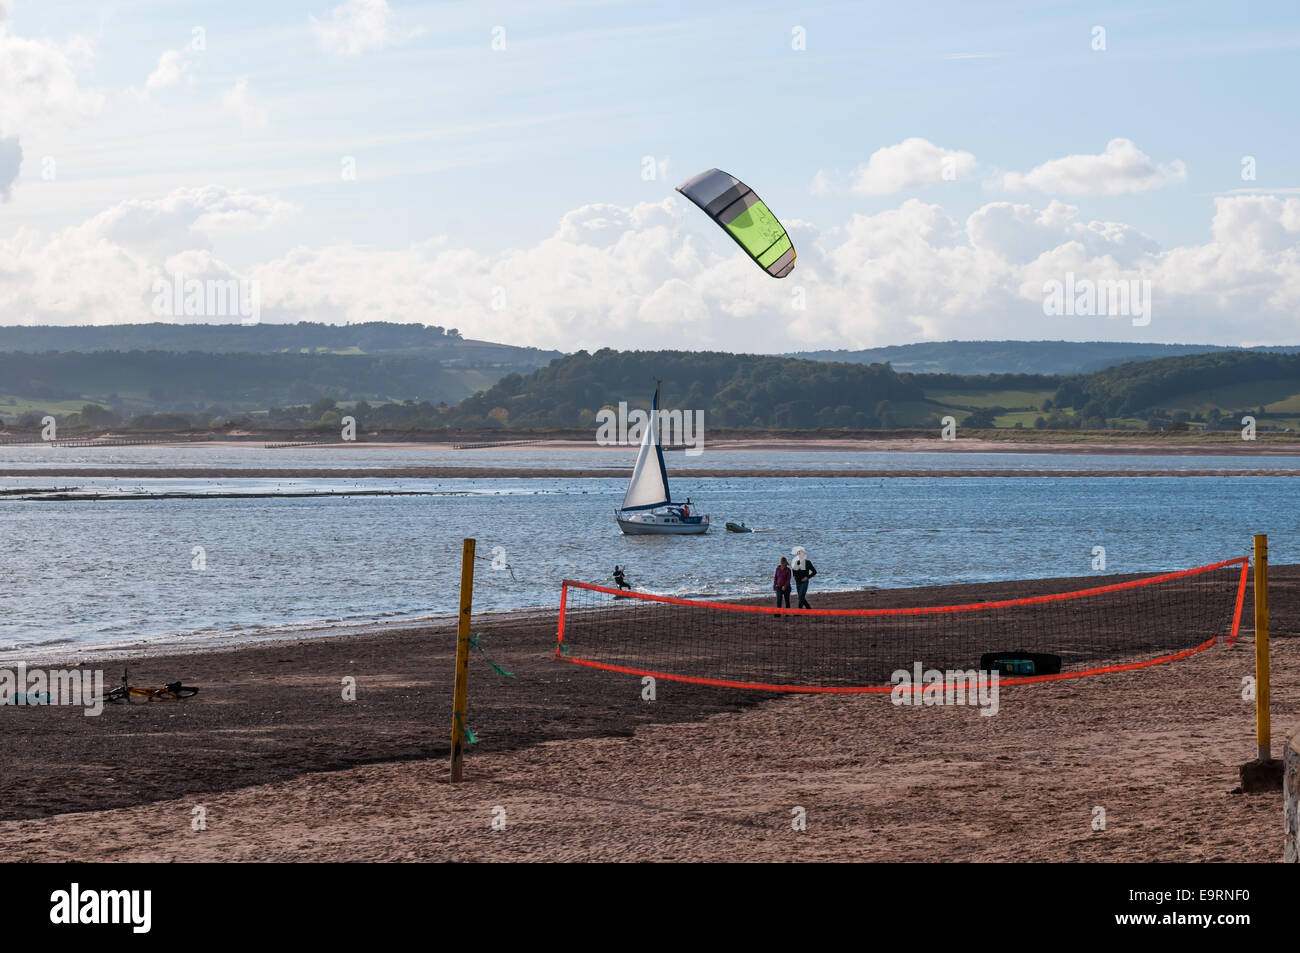 A kite surfer on a windy day at the river Exe estuary with beach walkers, a sail boat and a volley ball net in the - Stock Image